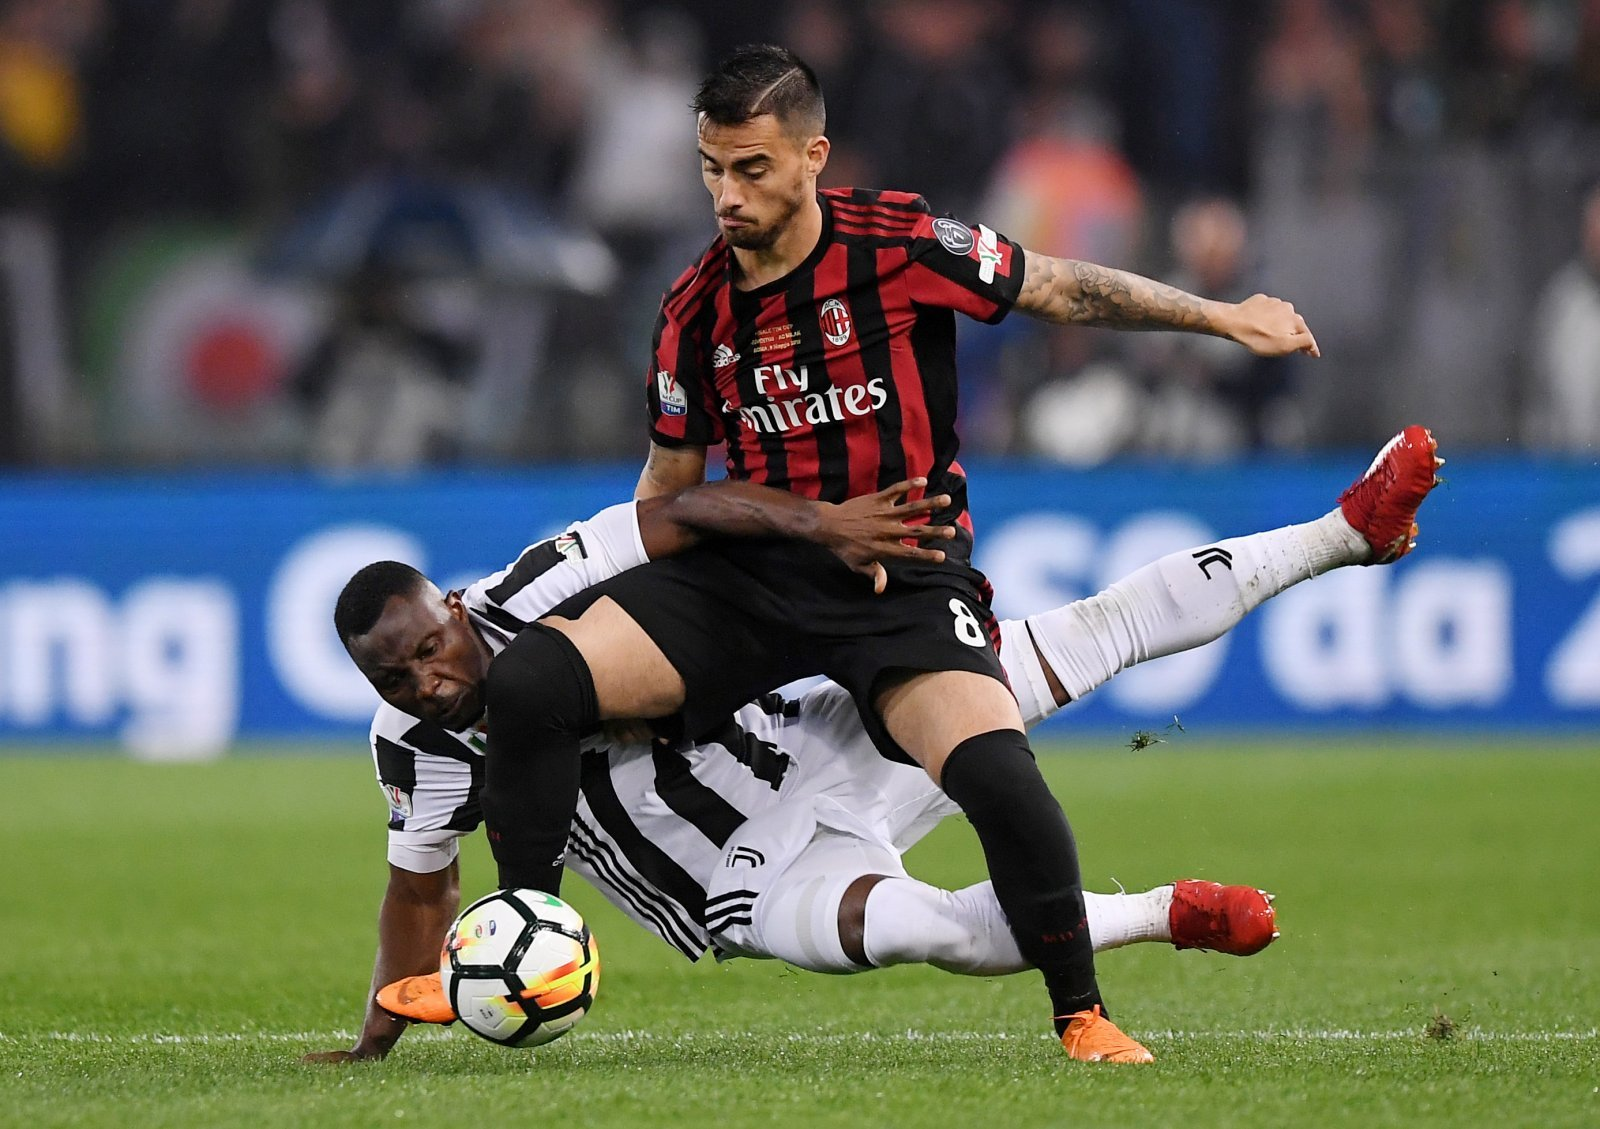 Tottenham linked with a move for Suso